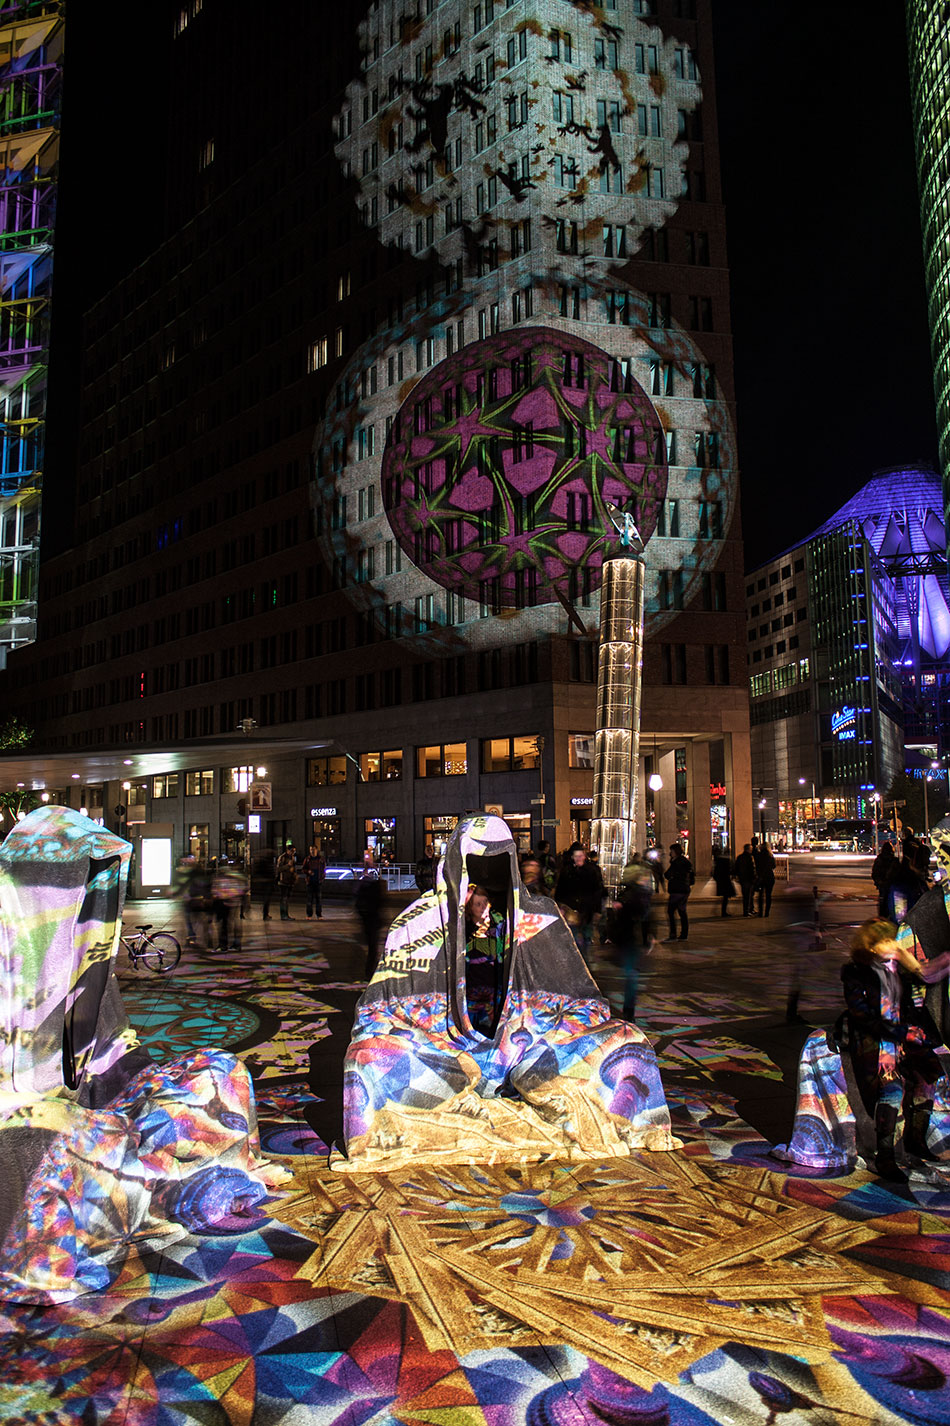 festival-of-lights-berlin-potzdamer-platz-light-art-show-exhibition-lumina-guardians-of-time-manfred-kili-kielnhofer-contemporary-arts-design-large-scale-monumental-public-sculpture-3663